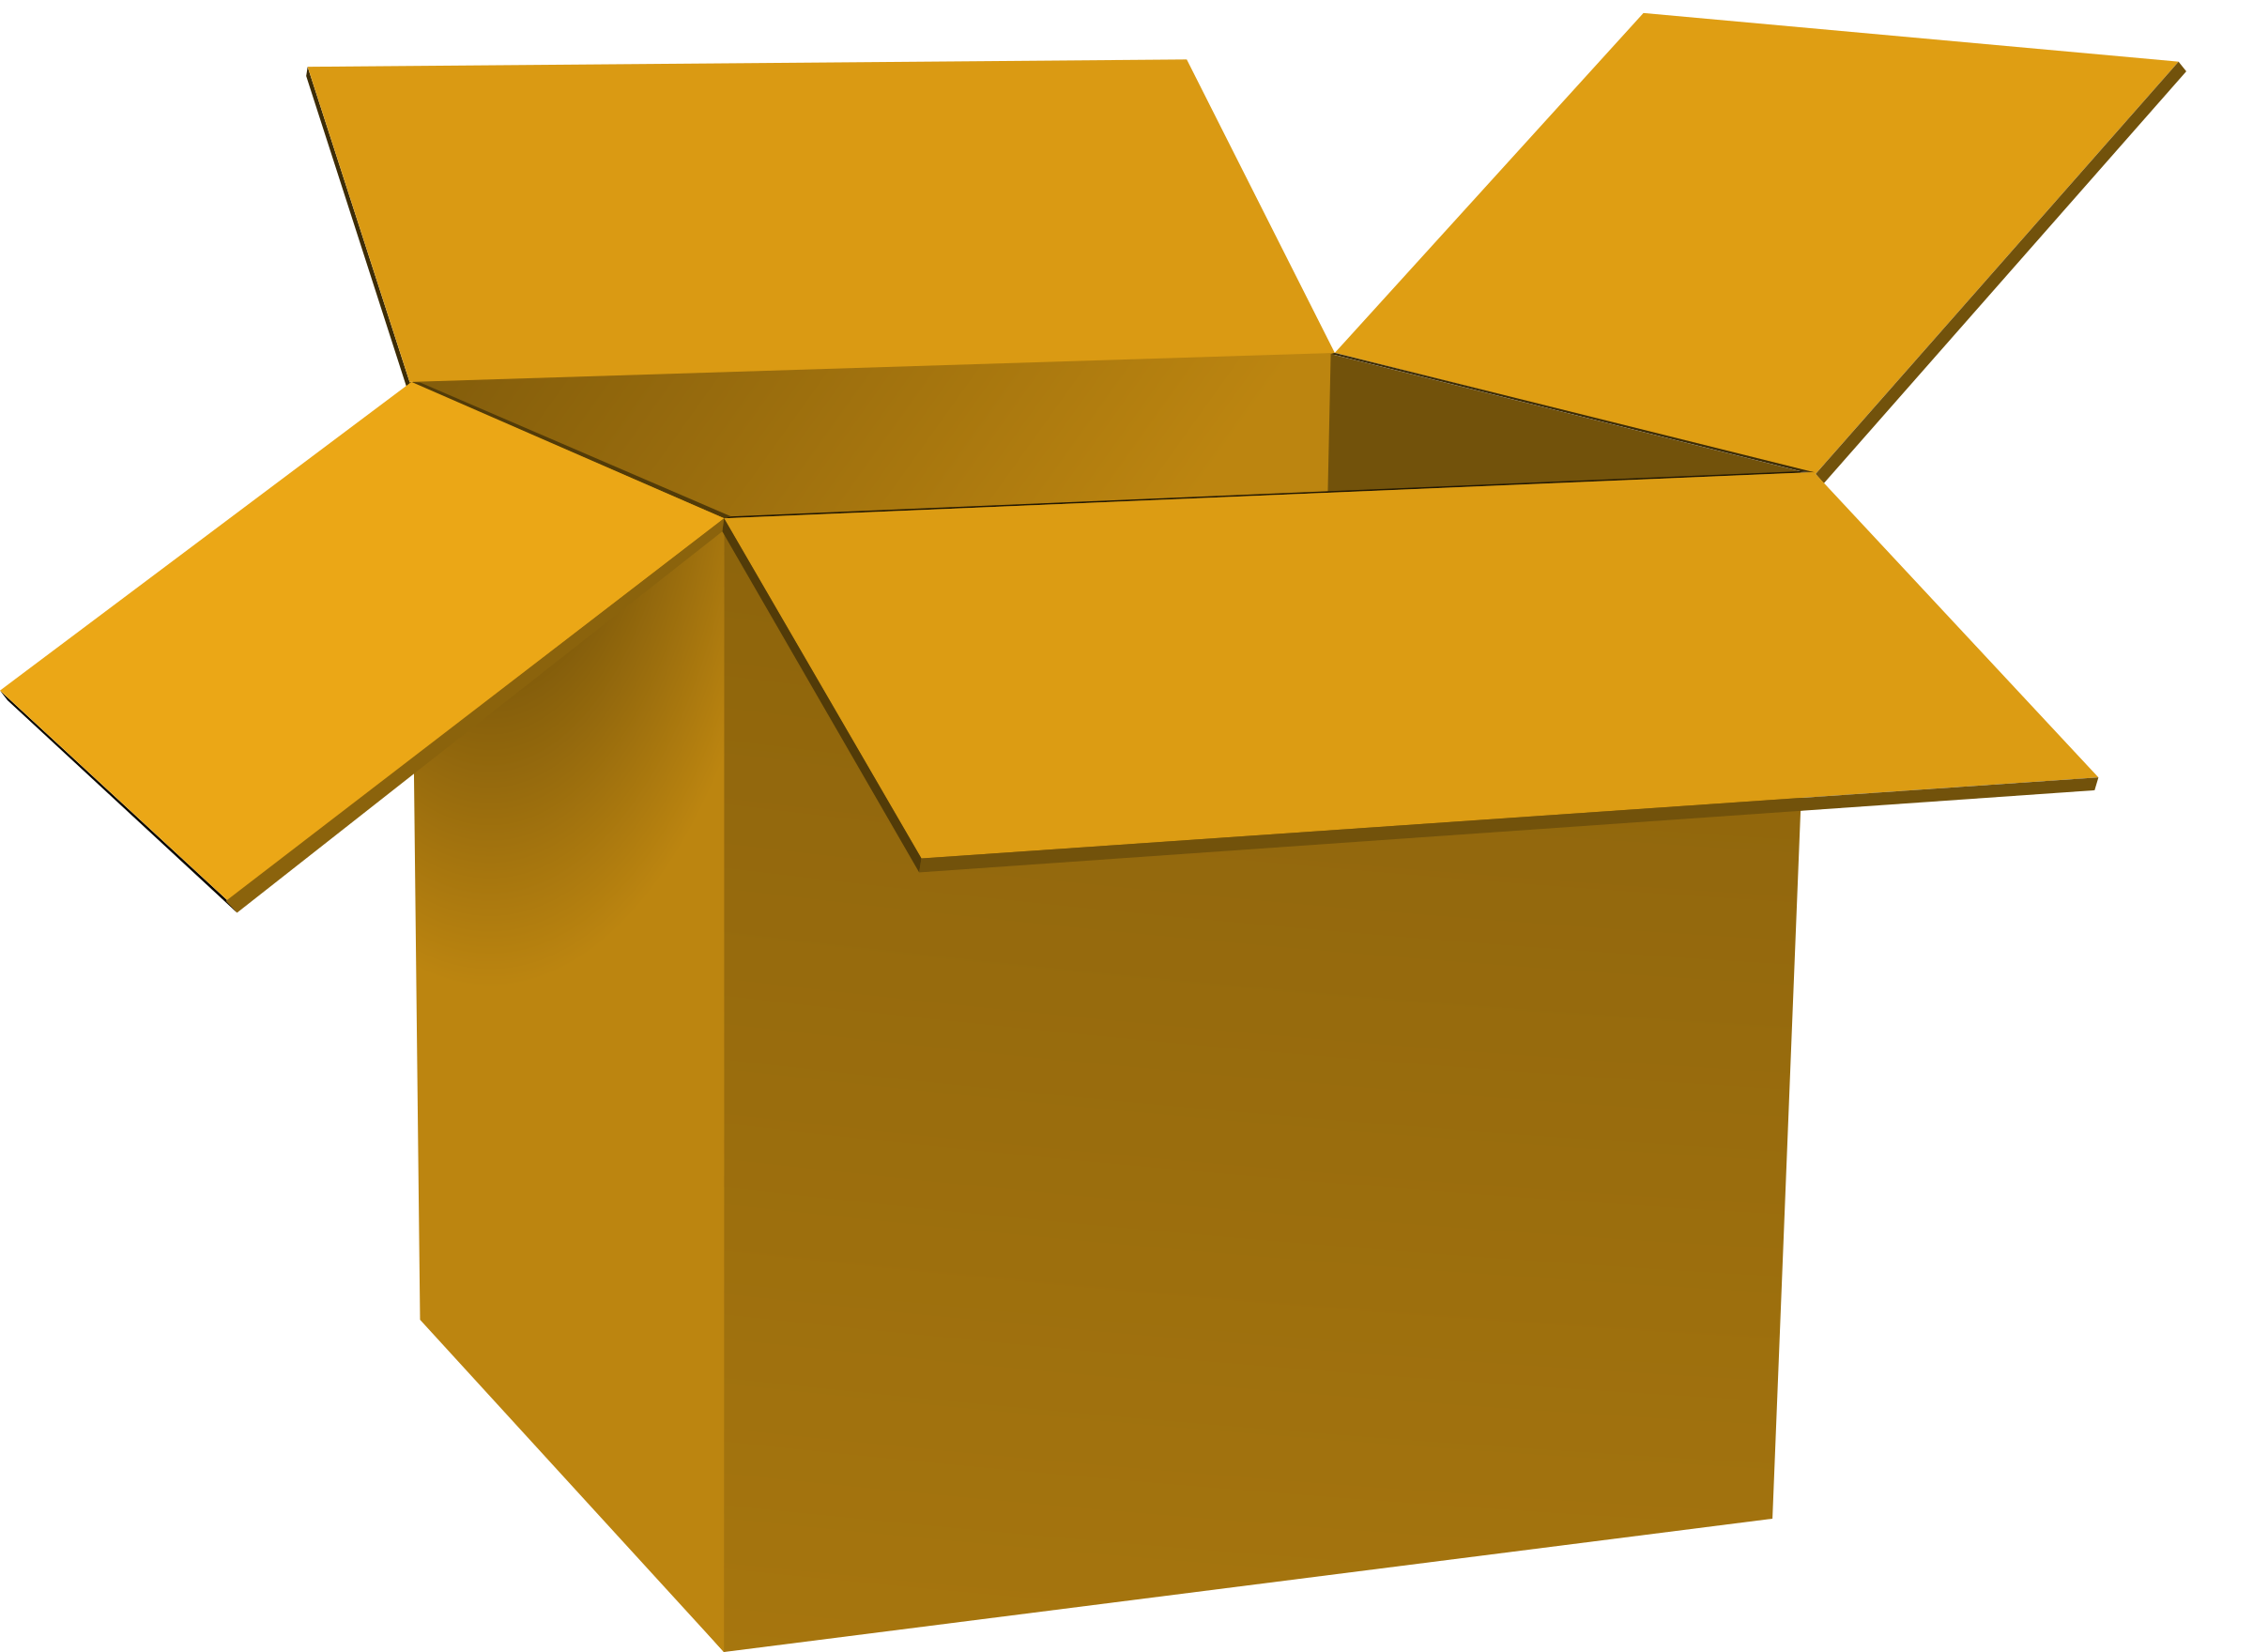 Png web icons now. Box clipart icon